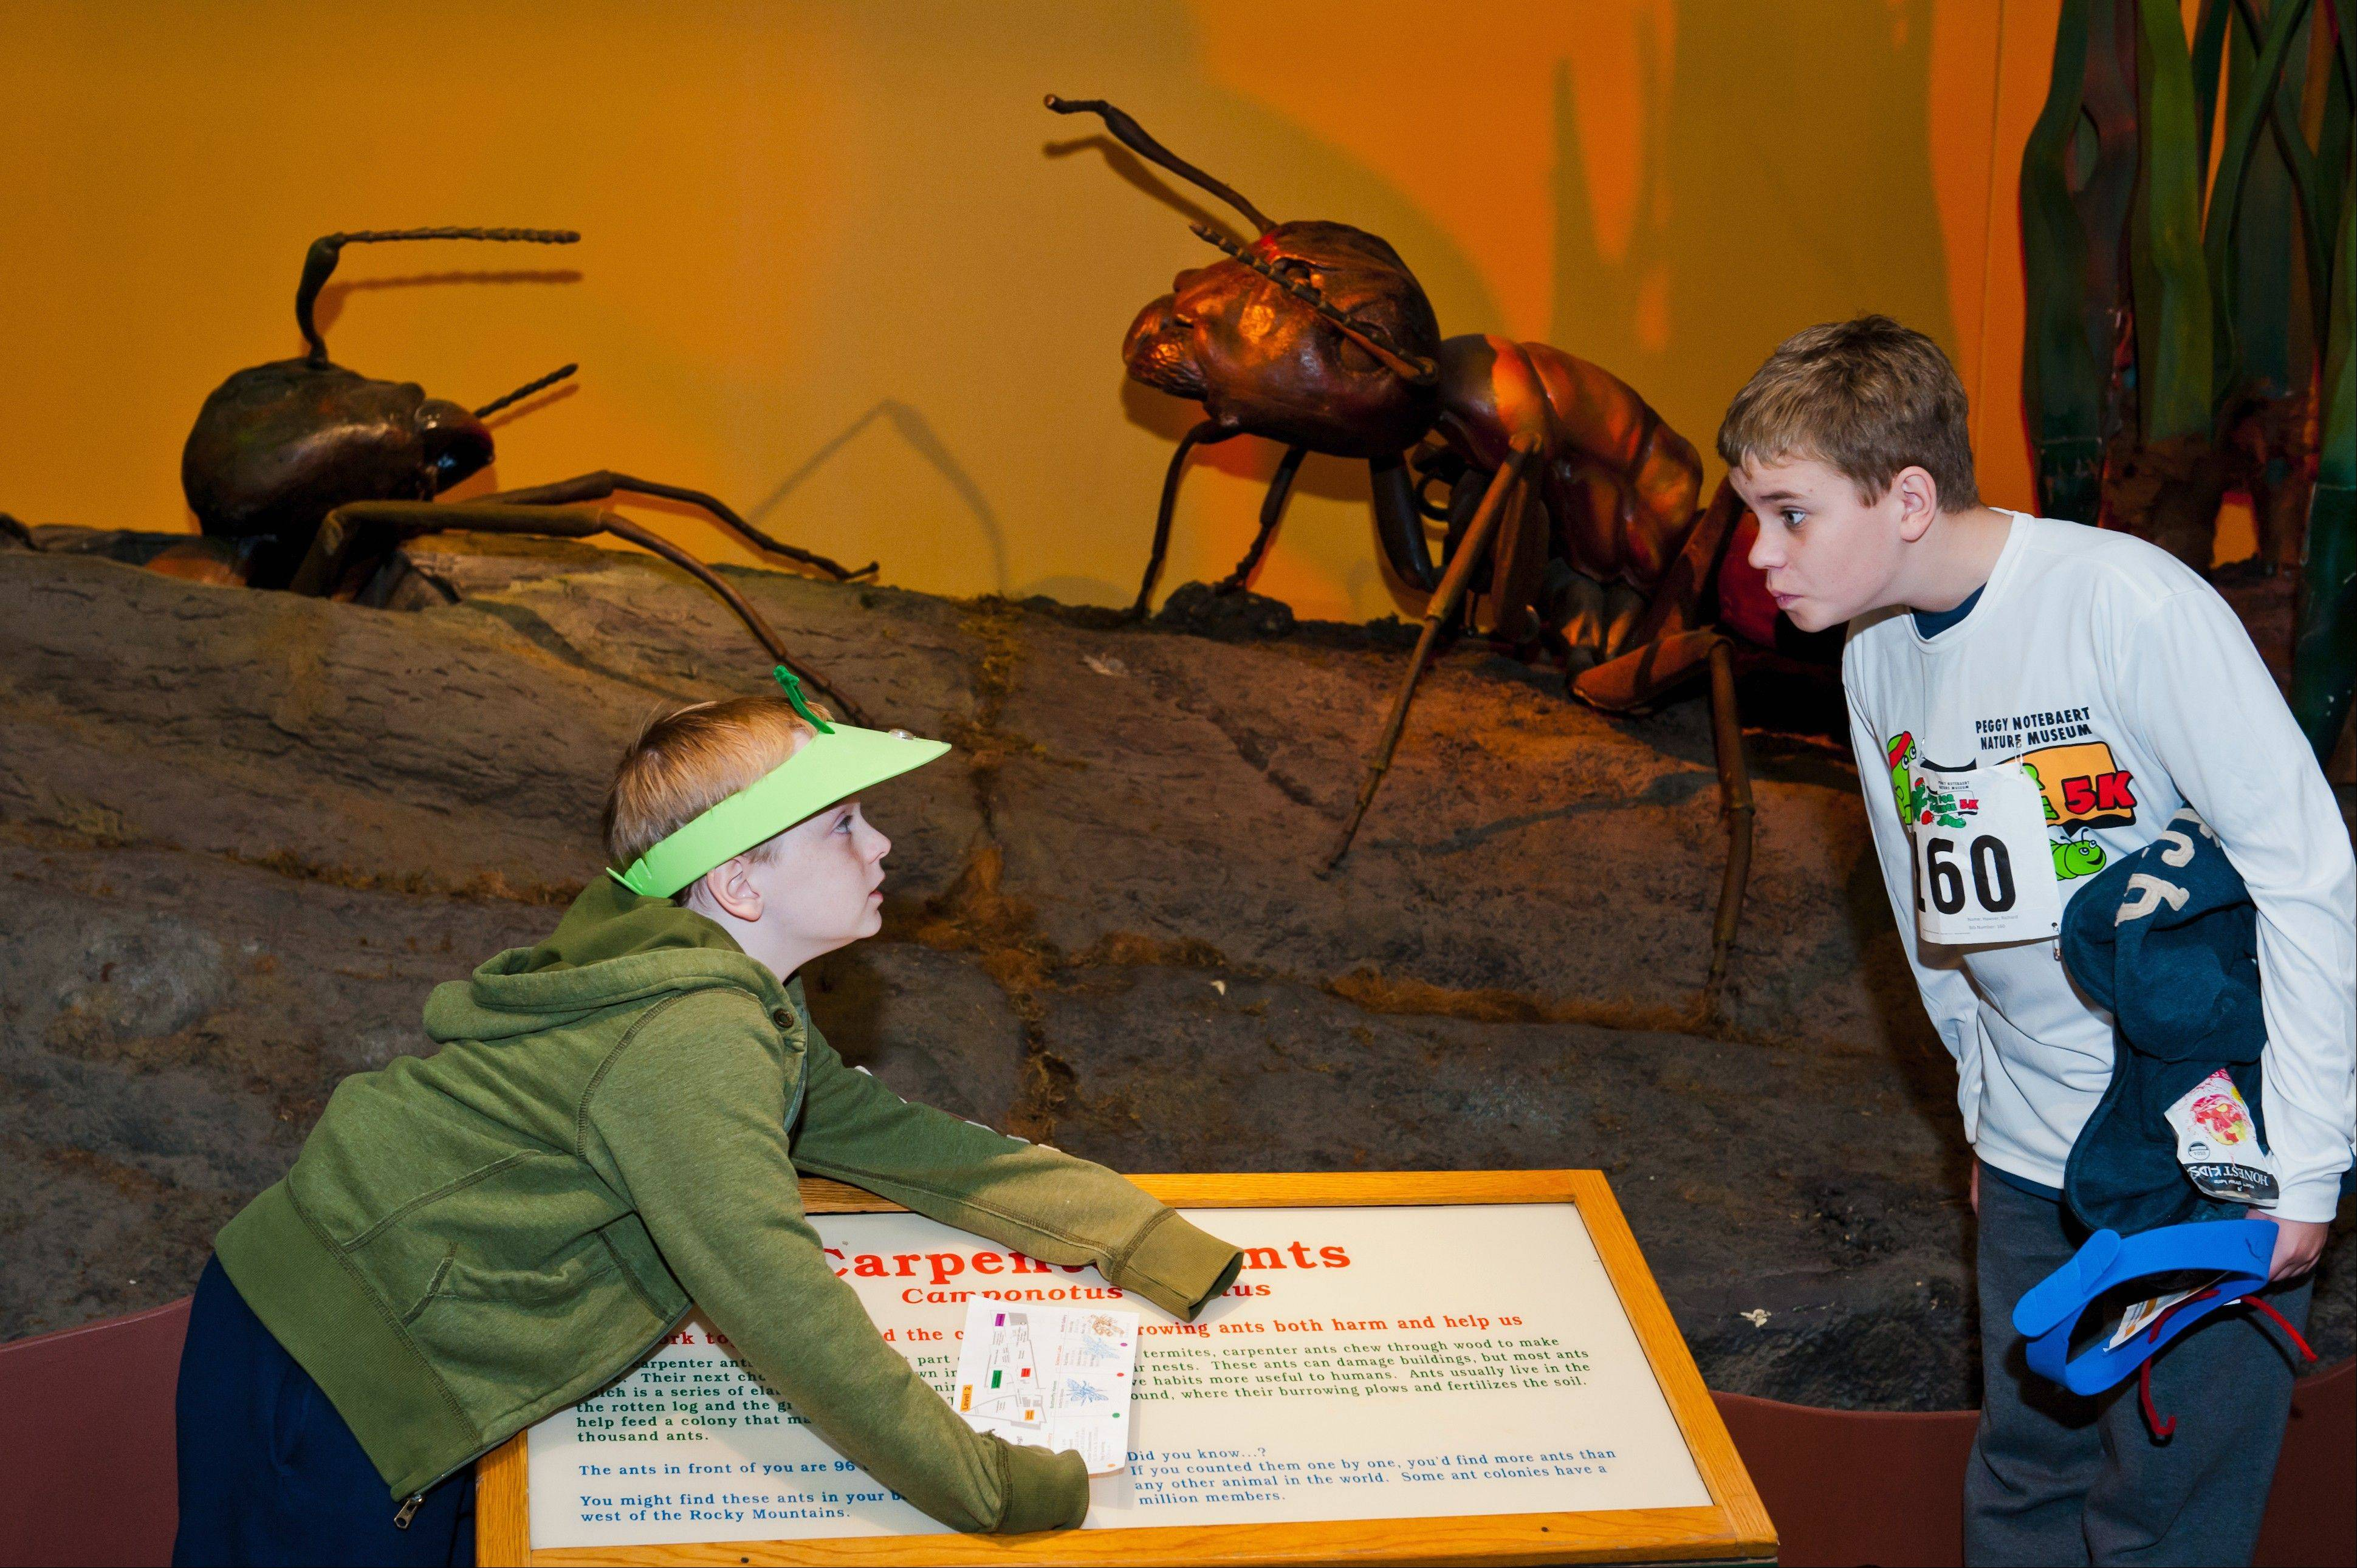 Young students will enjoy the giant animatronic creatures in the Backyard Monsters exhibit at the Peggy Notebaert Nature Museum.